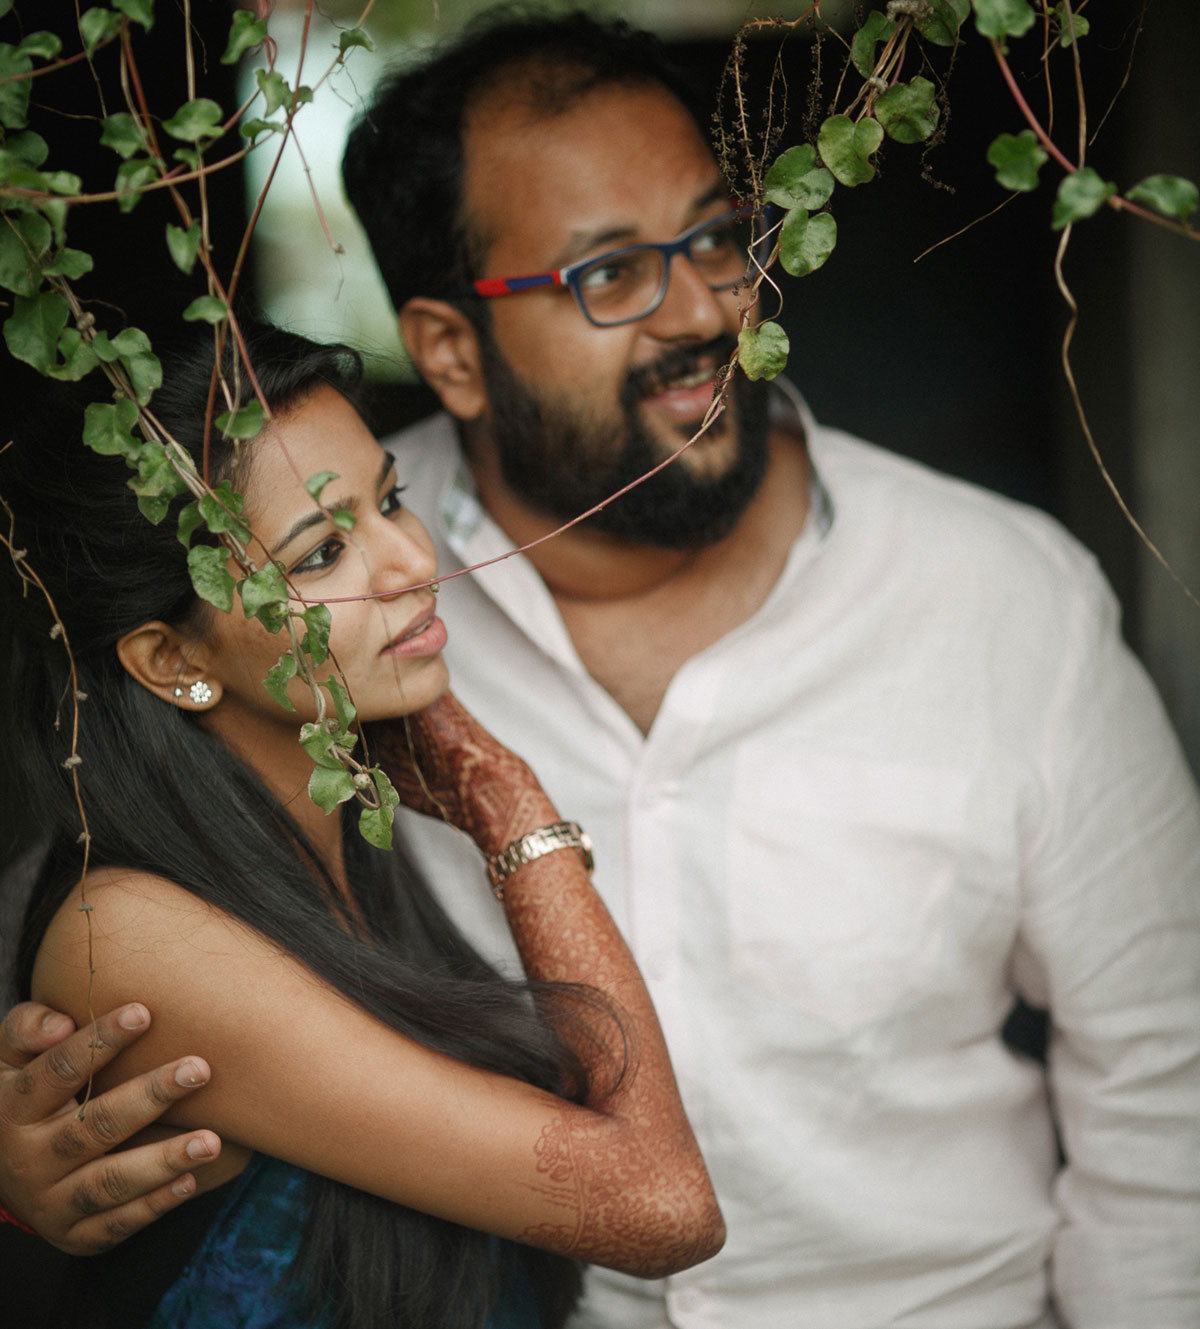 https://www.wedid.in/wp-content/uploads/2019/07/romantic-pre-wedding.jpg